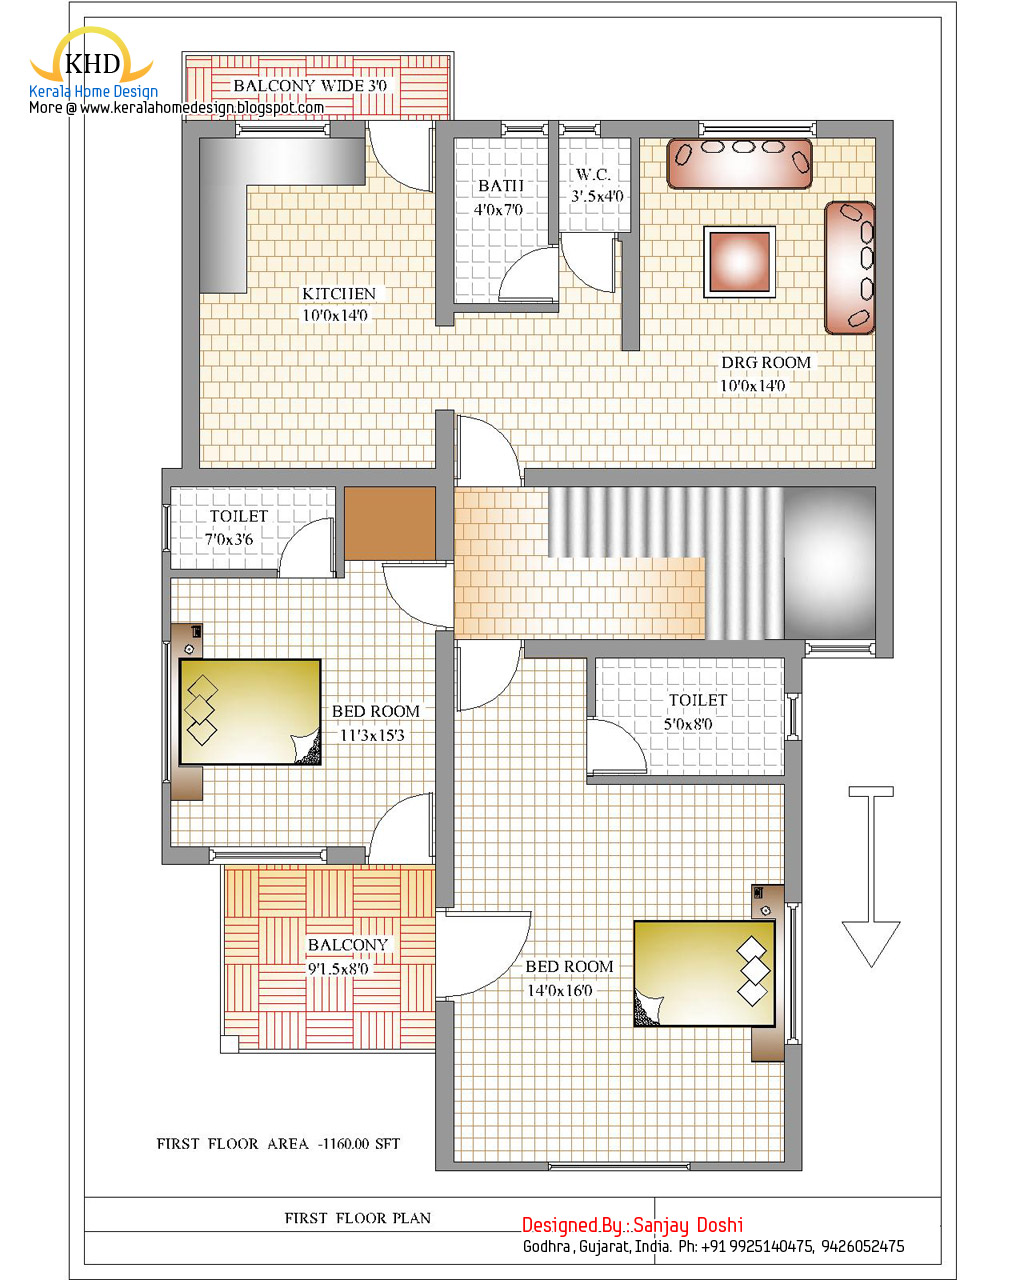 Duplex house plan and elevation 2310 sq ft indian for 300 sqm house design philippines